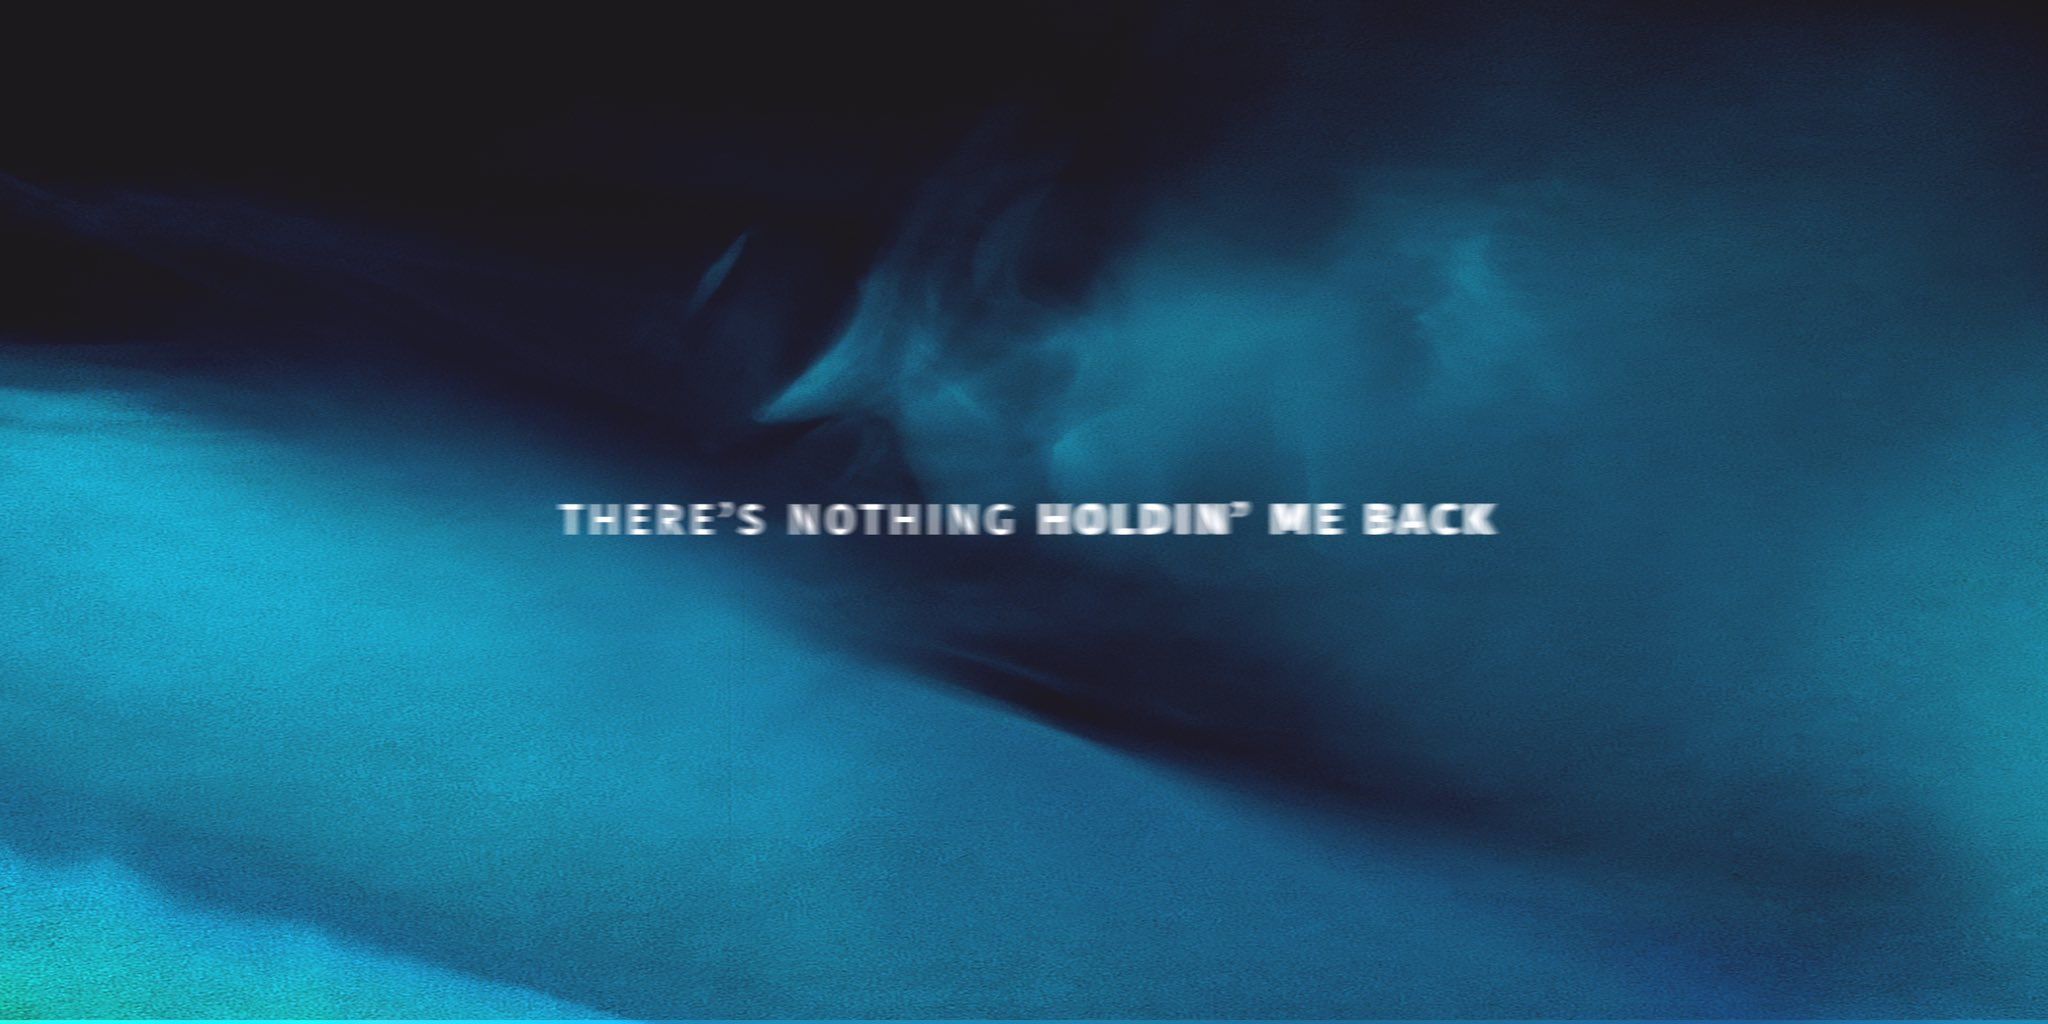 There's Nothing #HoldinMeBack https://t.co/bEmQqHS8Gq https://t.co/eXT6Xa6M1t